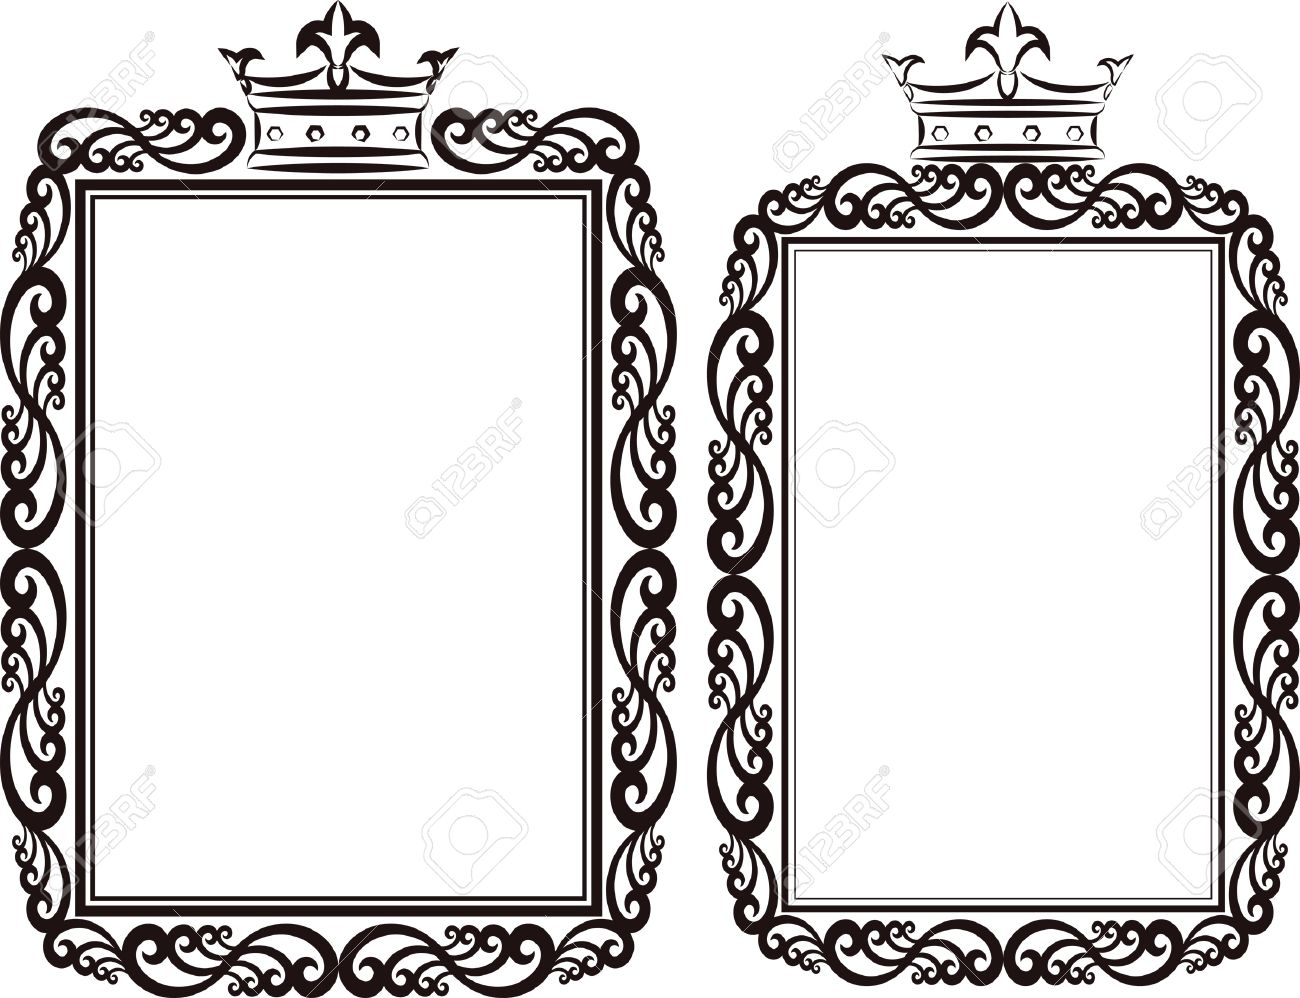 royal border clip art illustration royalty free cliparts vectors rh 123rf com free clipart borders for text boxes free clipart borders for labels